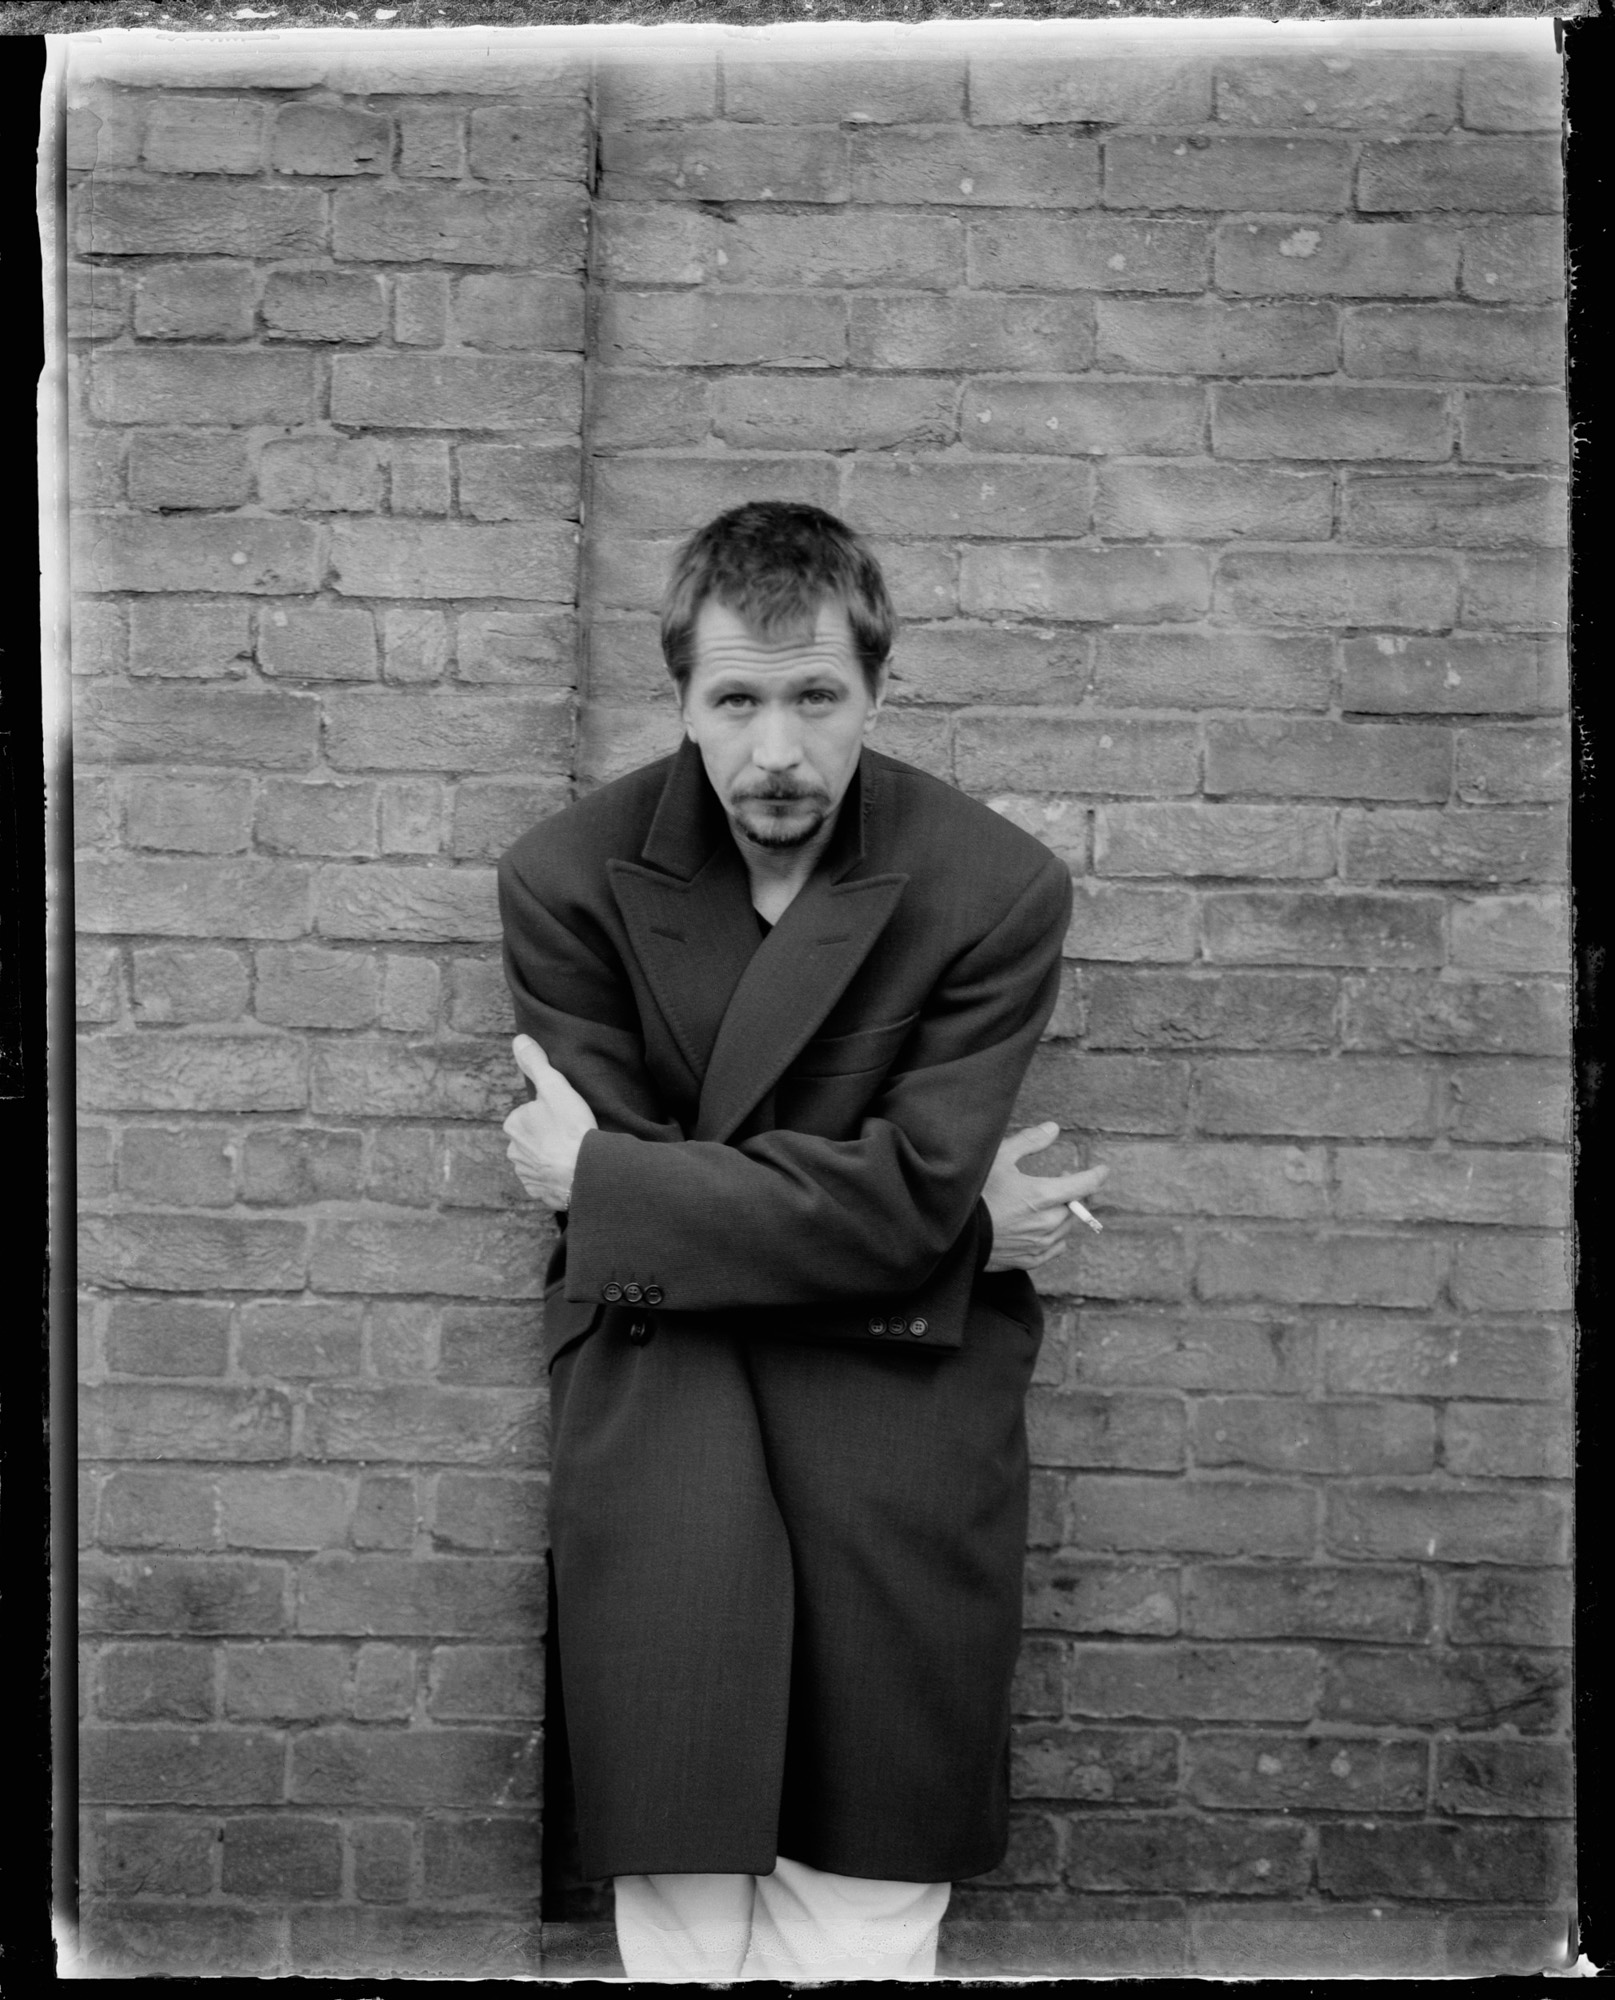 1997, France --- British Actor Gary Oldman --- Image by © Marcel Hartmann/Sygma/Corbis